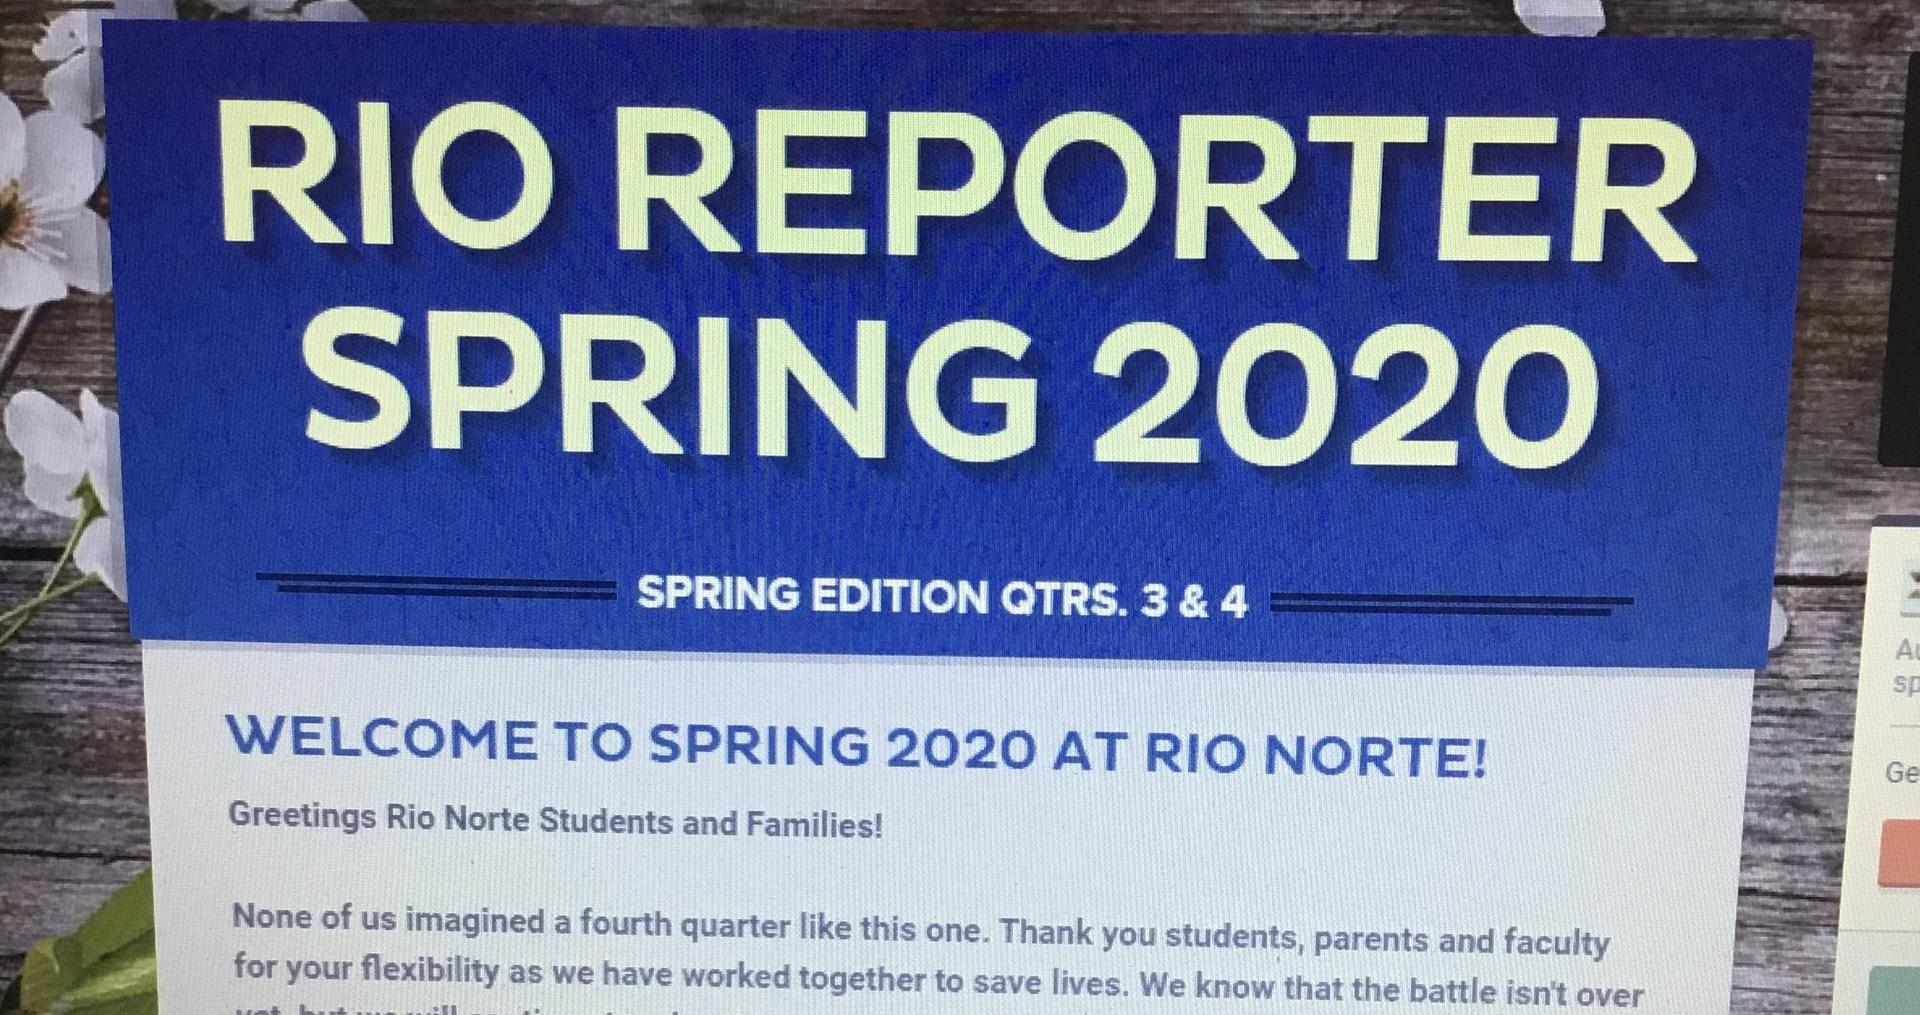 Picture of Rio Reporter Spring 2020